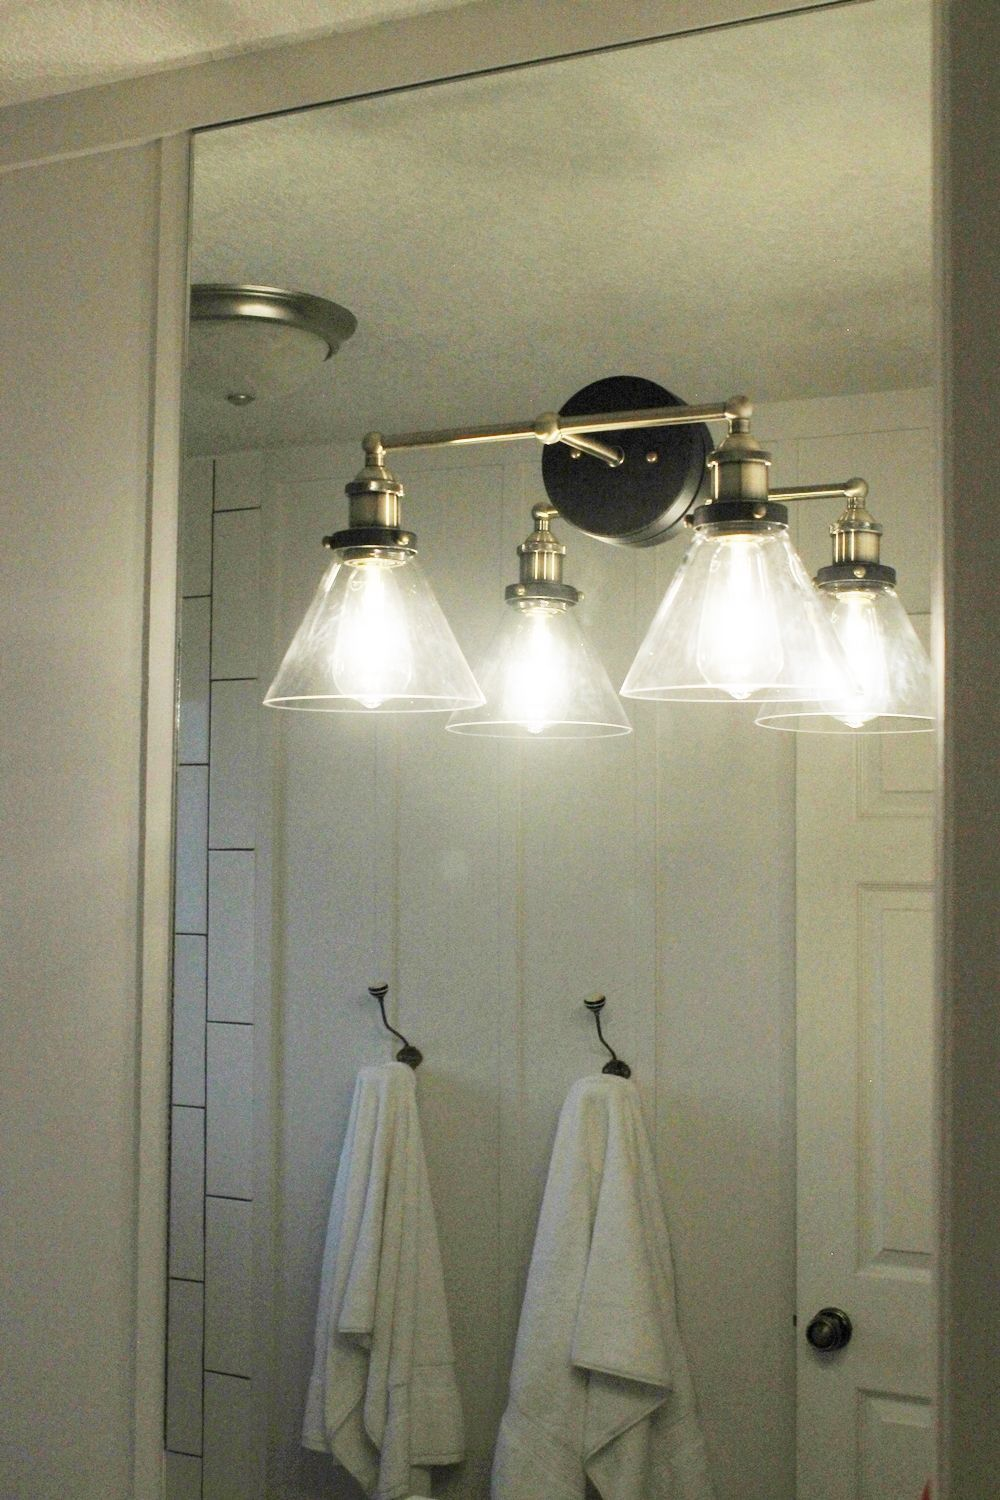 Vanity Lights Mounted On Mirror : How to Mount a Light On Top of a Mirror Bathroom Vanity